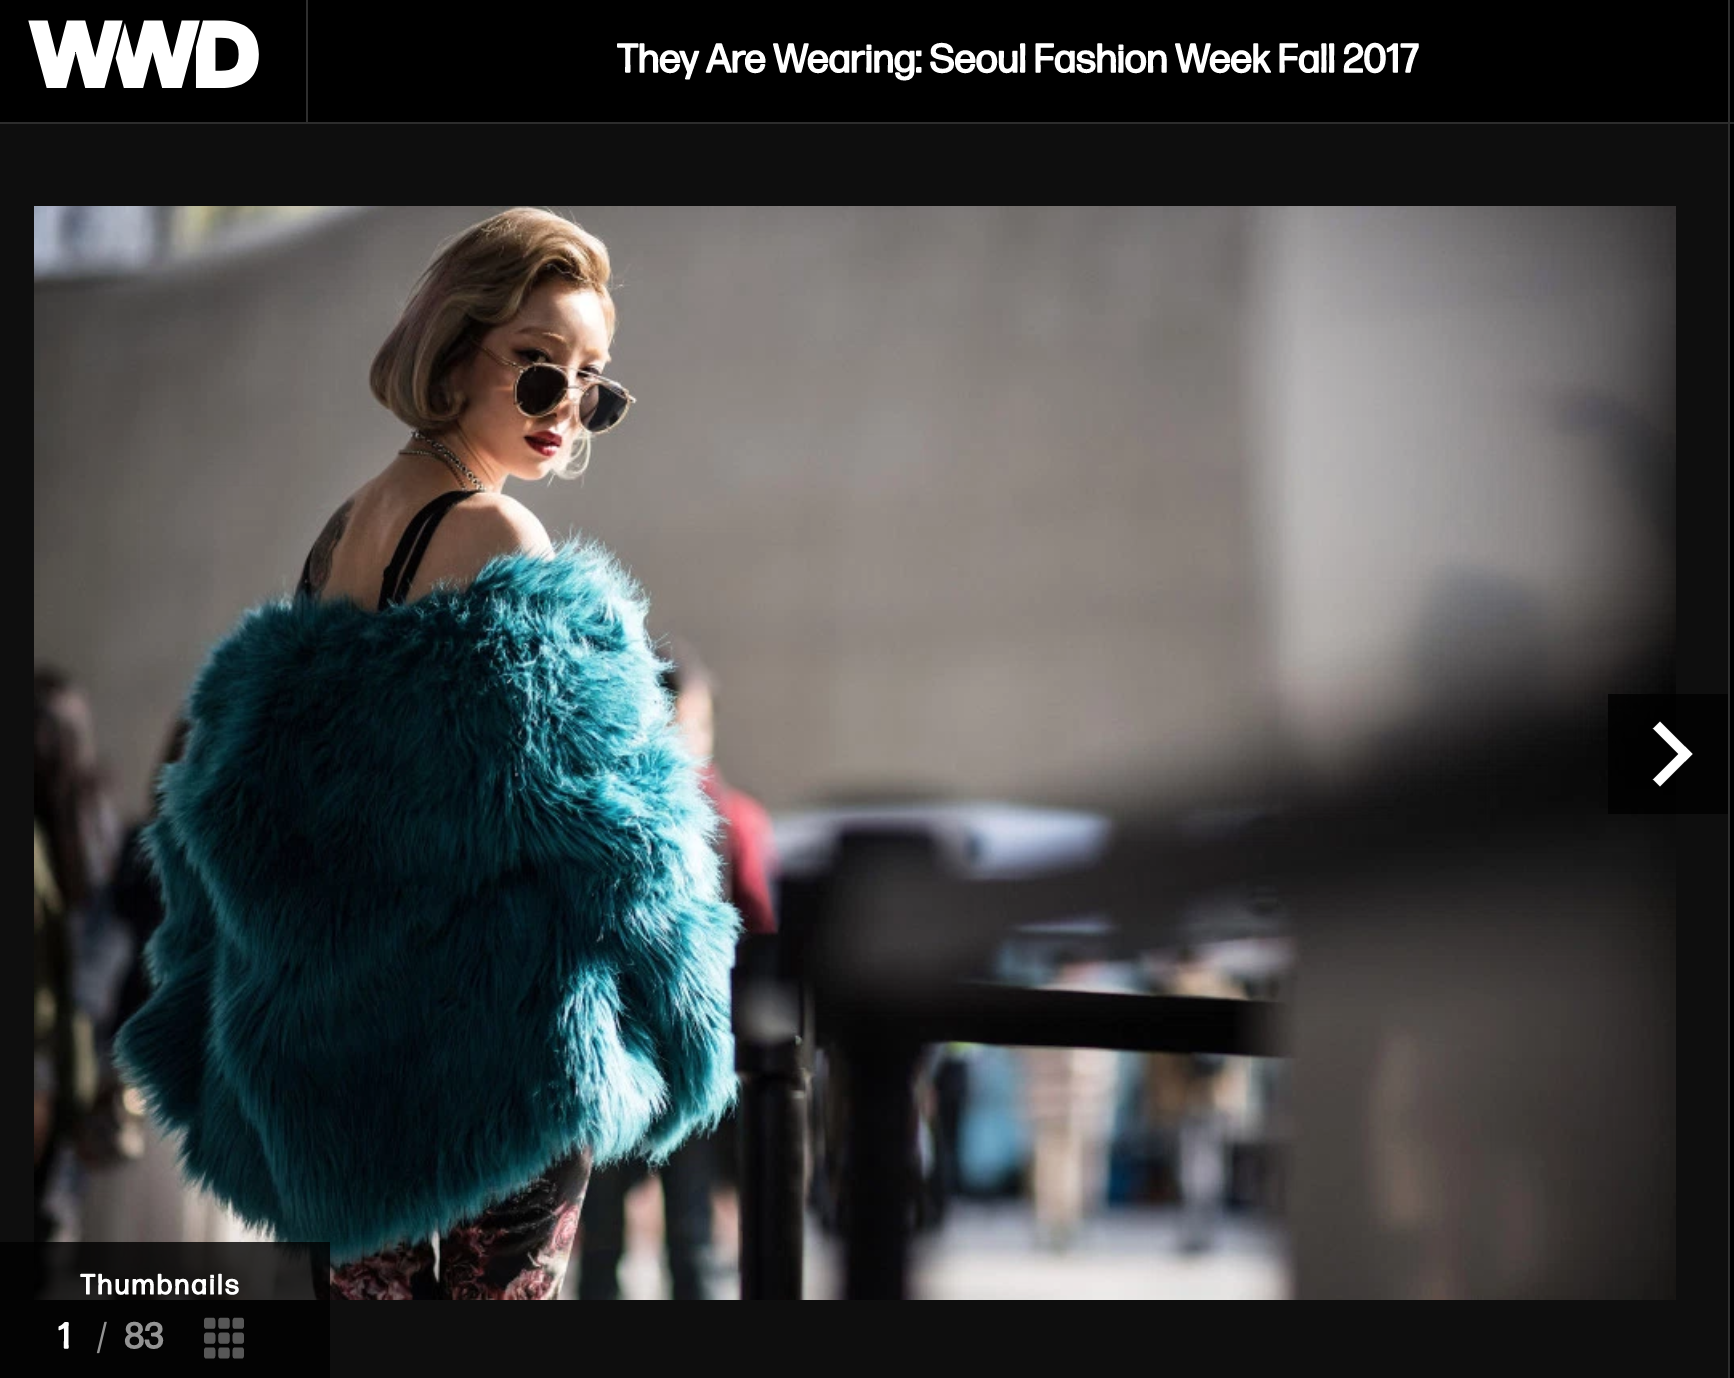 If WWD is looking at Seoul Fashion Week, it's important. Of note is the fact that there are no pictures of SFW runways in any of this coverage -- only street fashion.